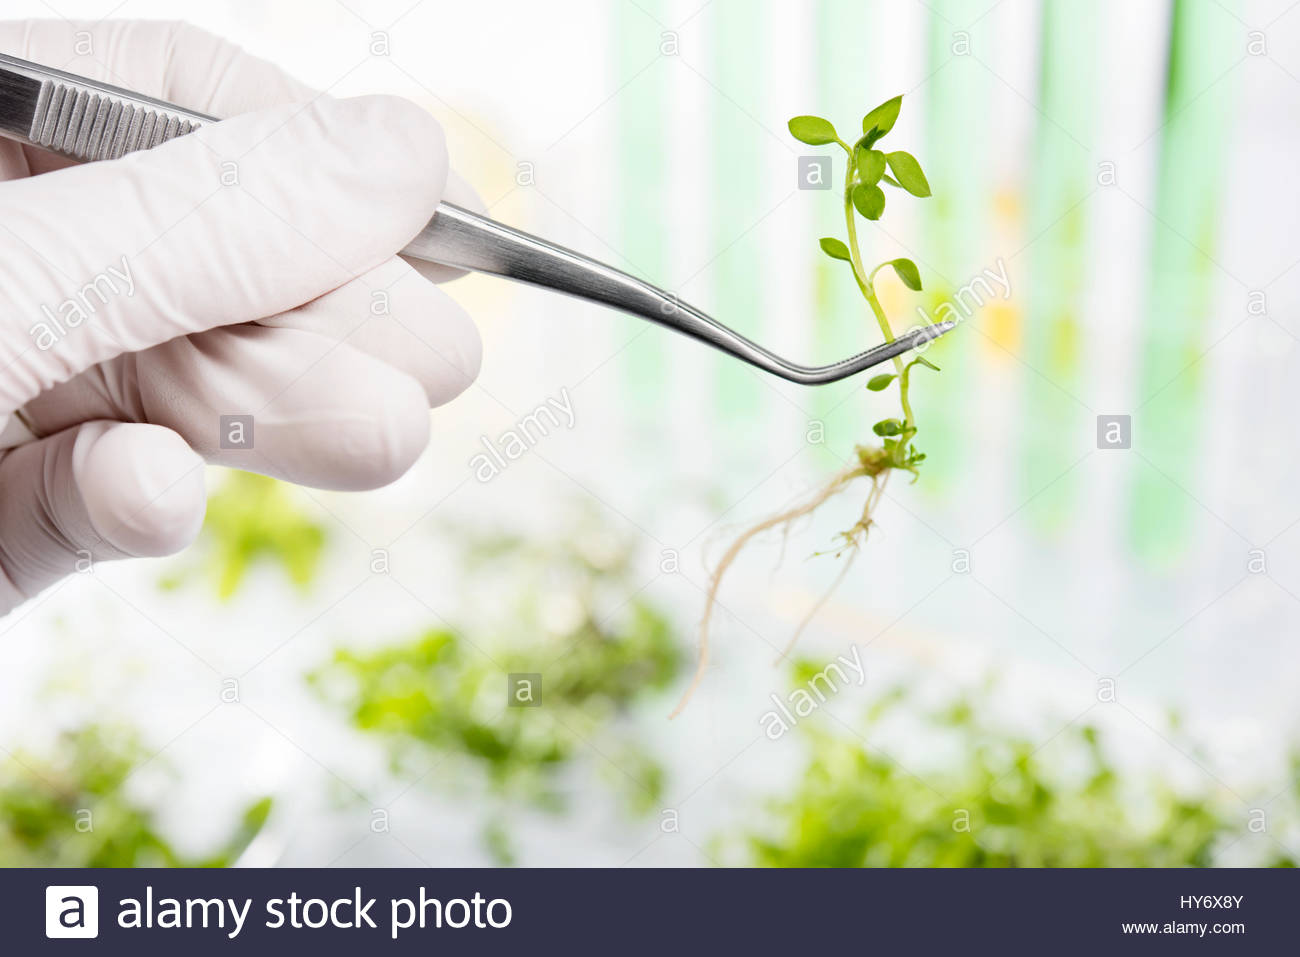 Scientist researching on plants in a laboratory Stock Photo